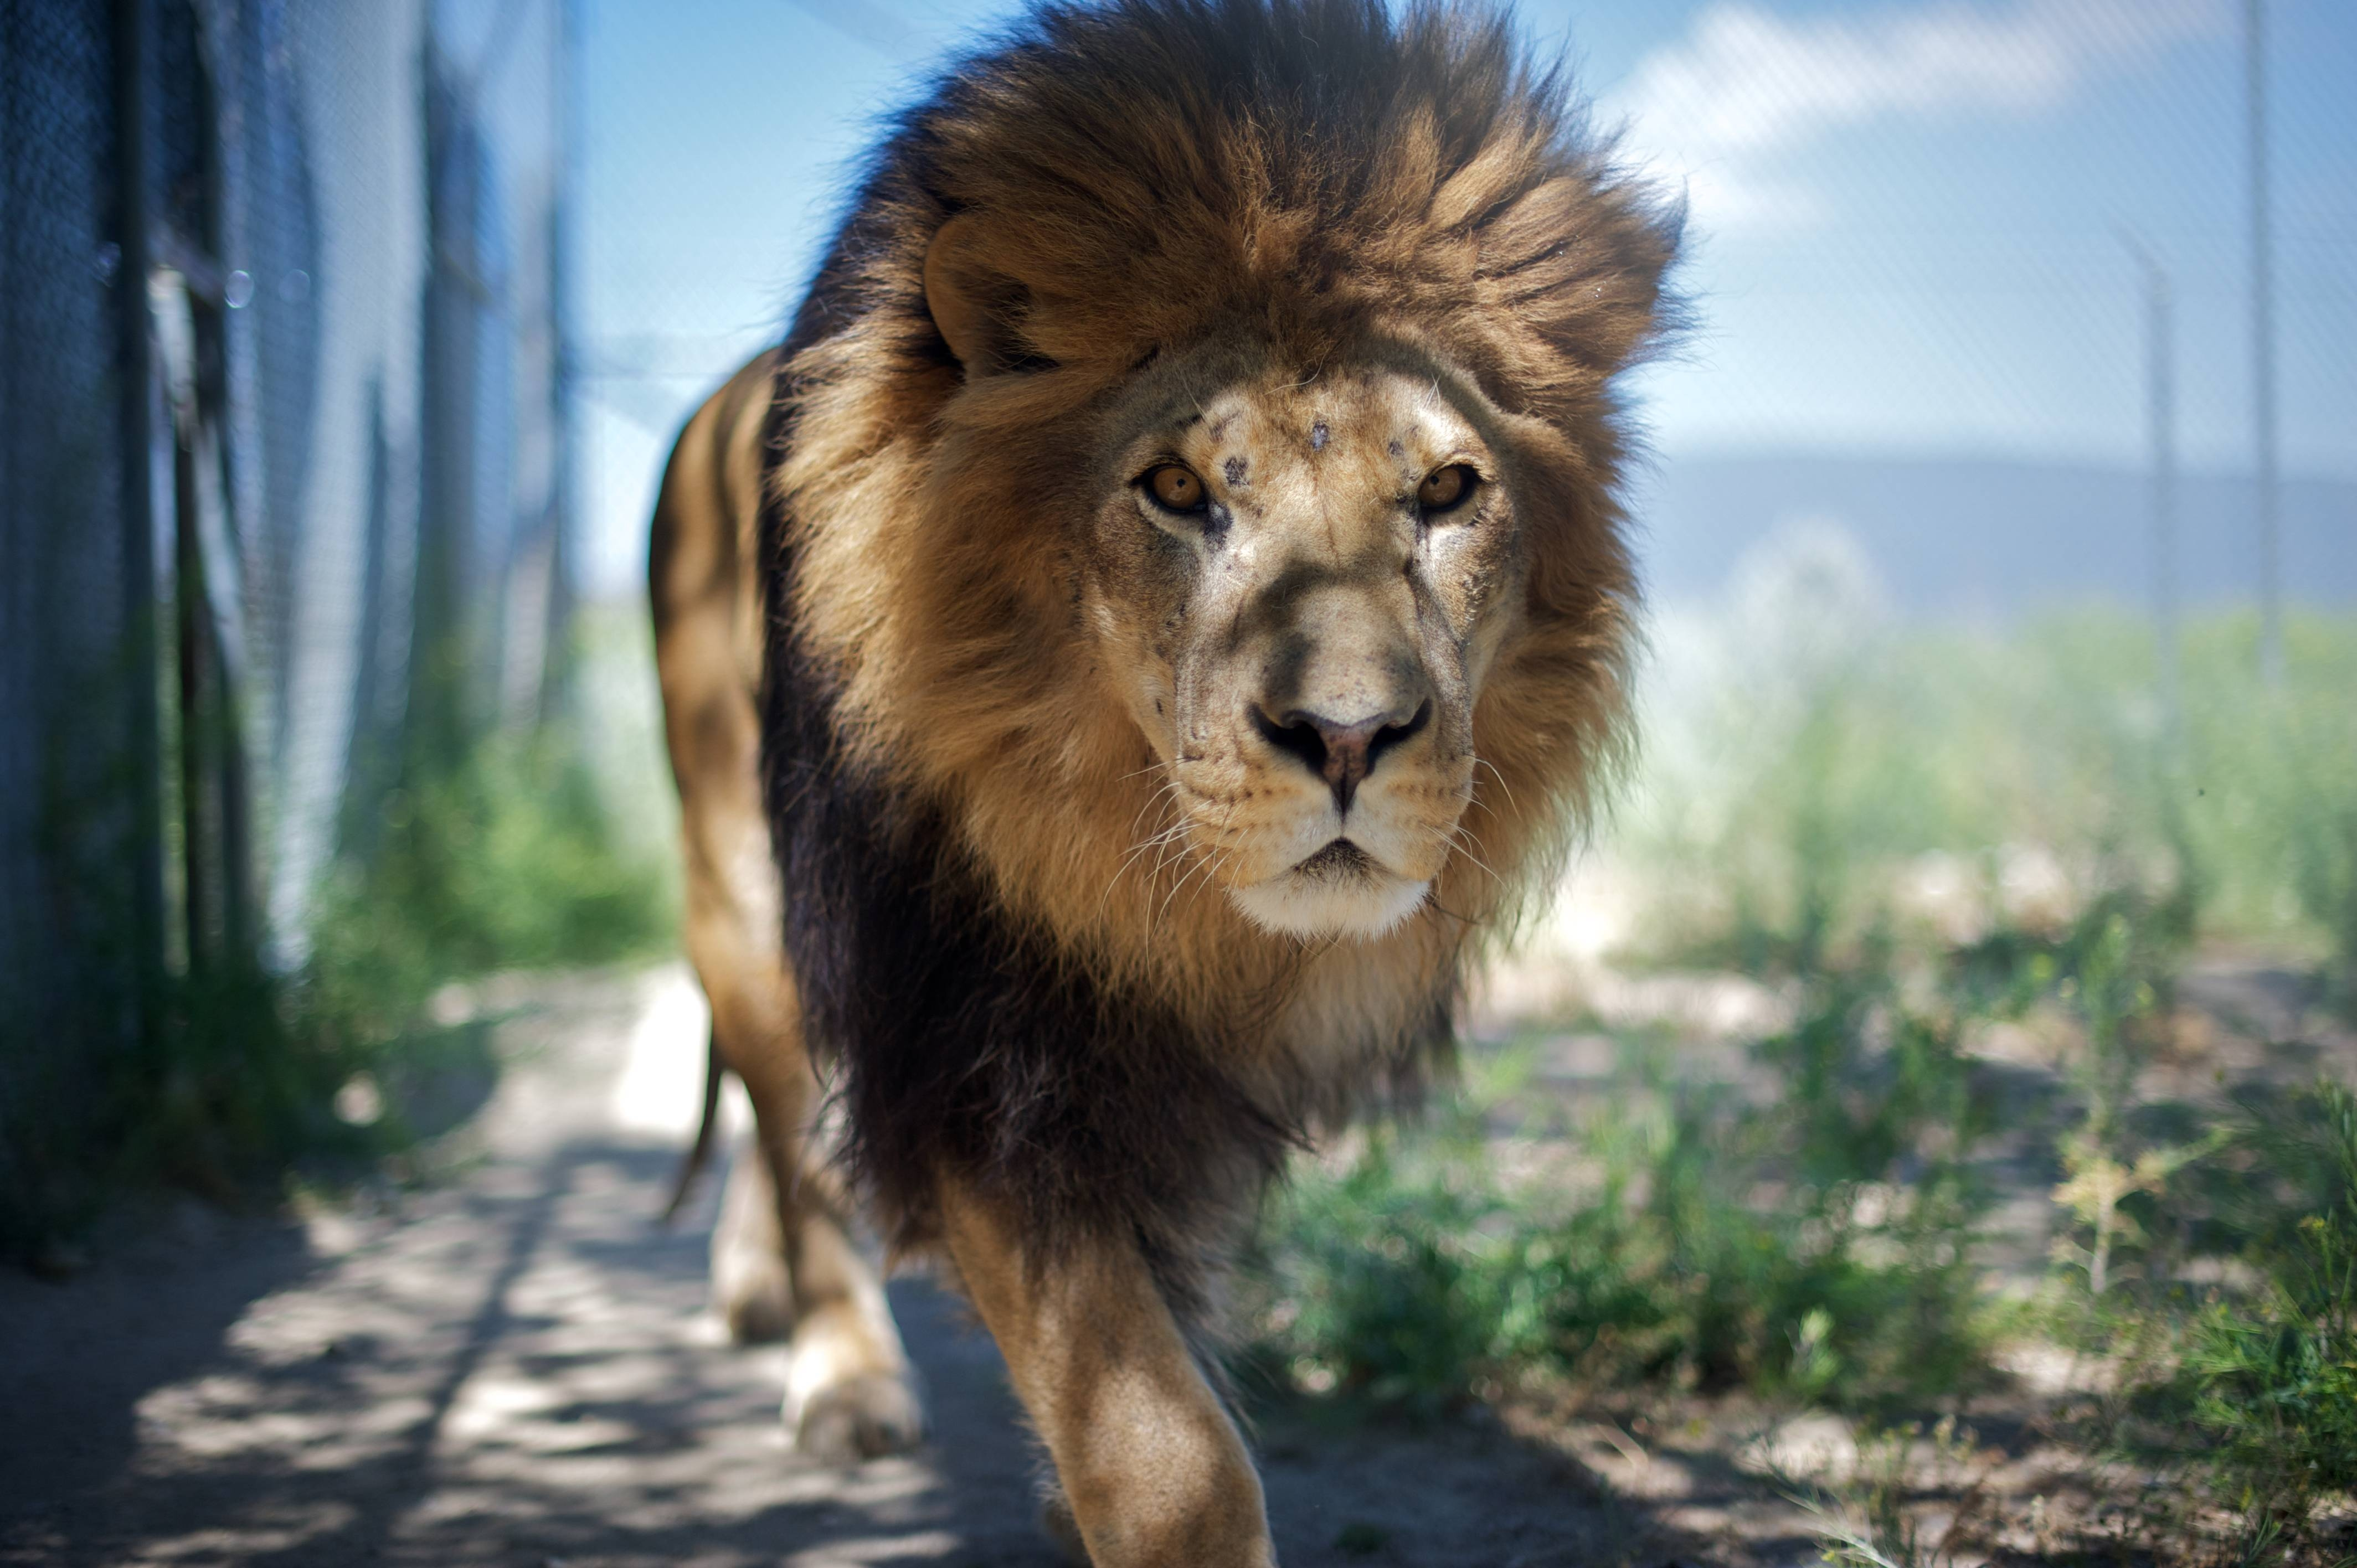 108187 download wallpaper Animals, Lion, Mane, Predator, Muzzle, Shadow screensavers and pictures for free